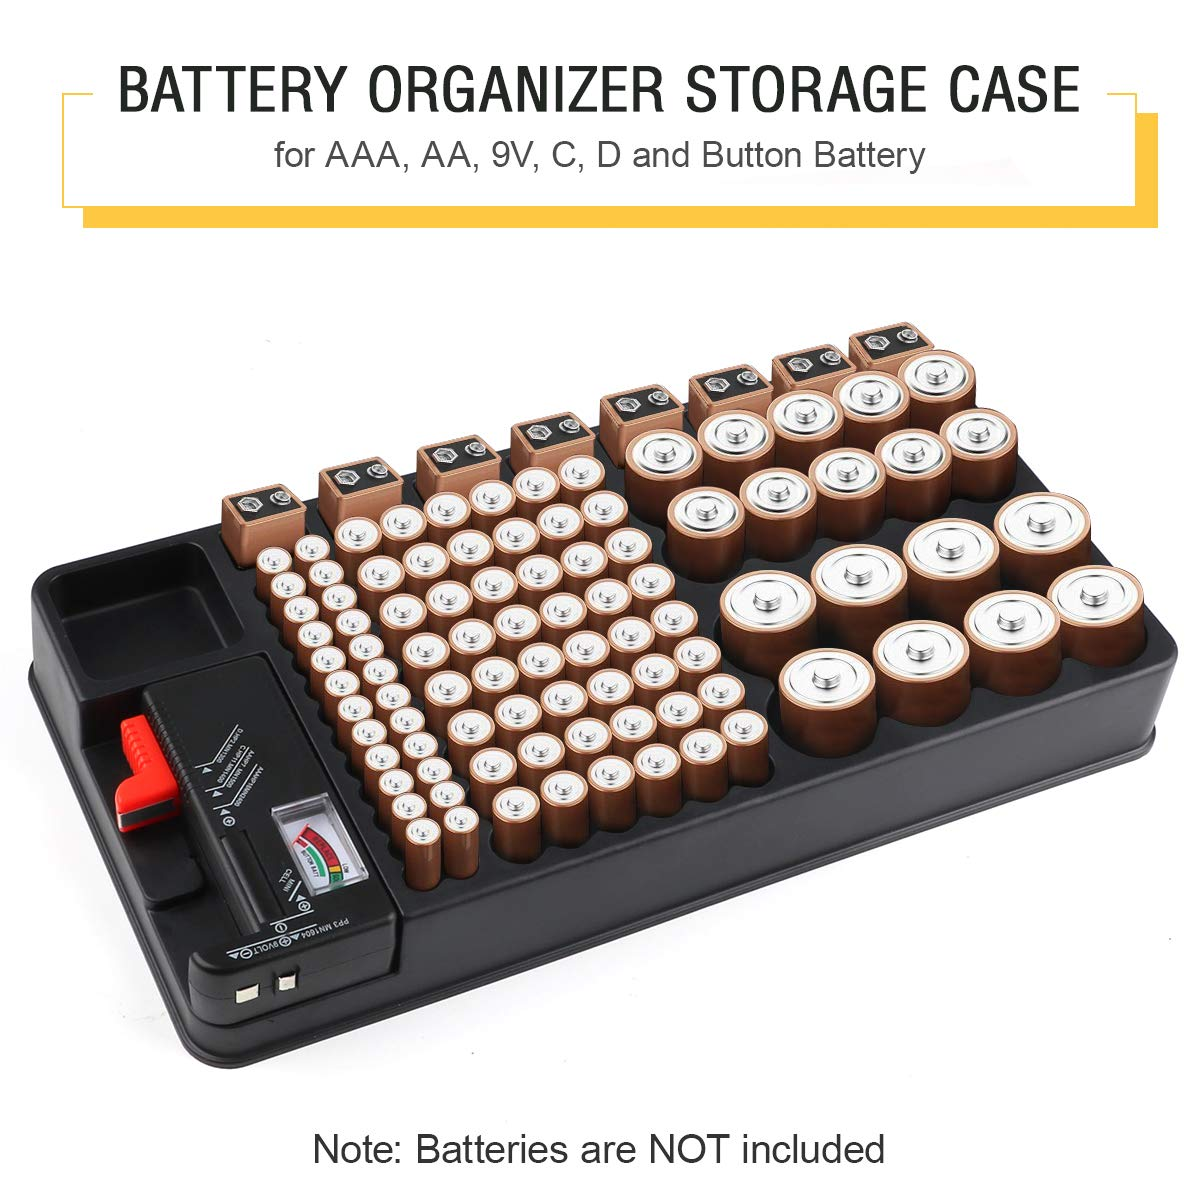 Battery Organizer Storage Case with Removable Battery Tester 110 Batteries Slot for AAA, AA, 9V, C, D and Button Battery by Makerfire